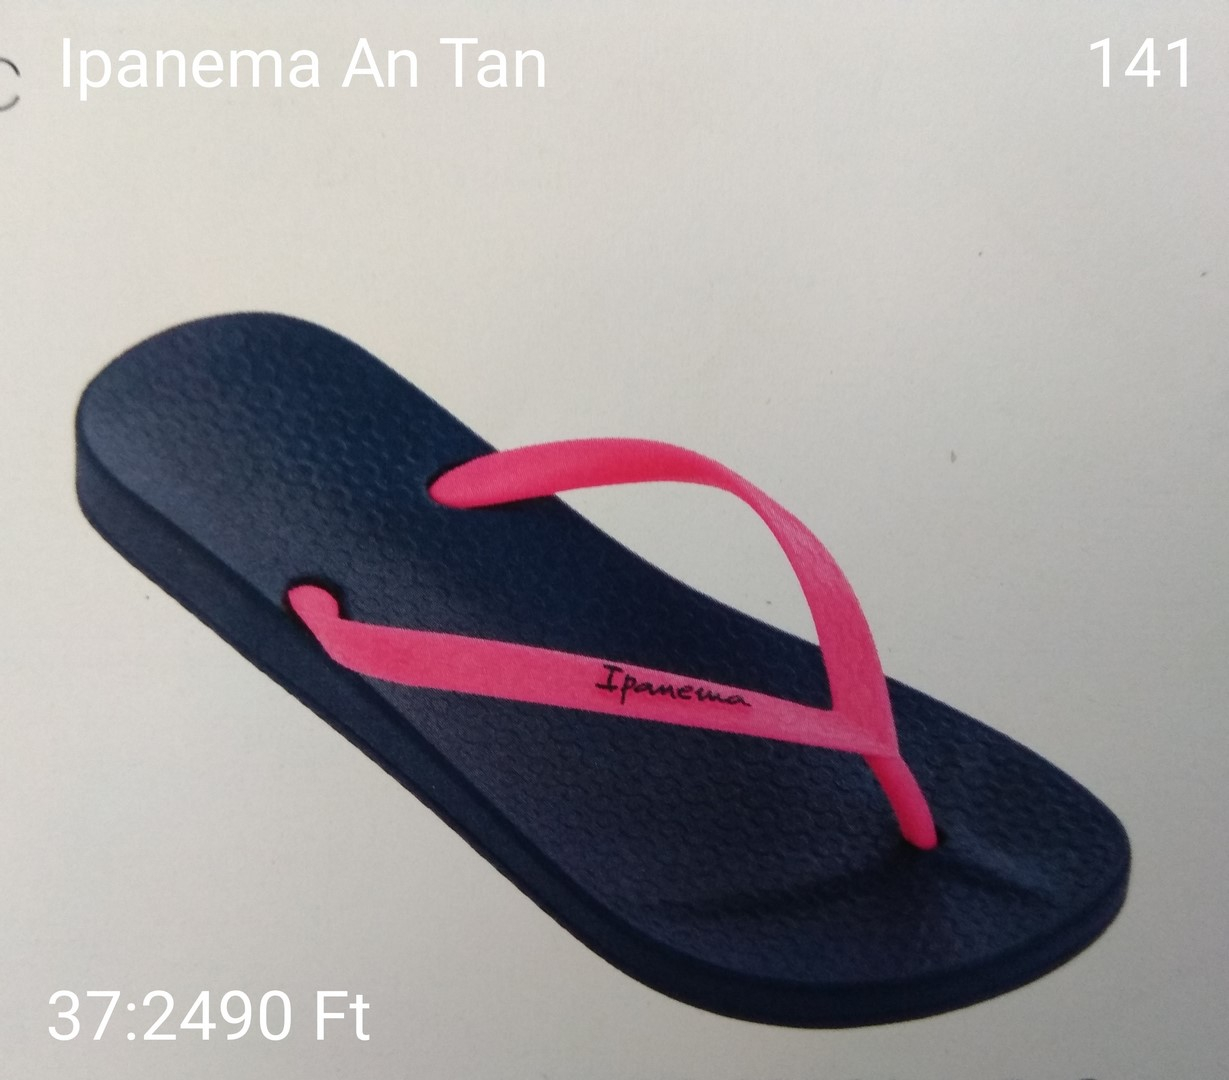 Ipanema An Tan